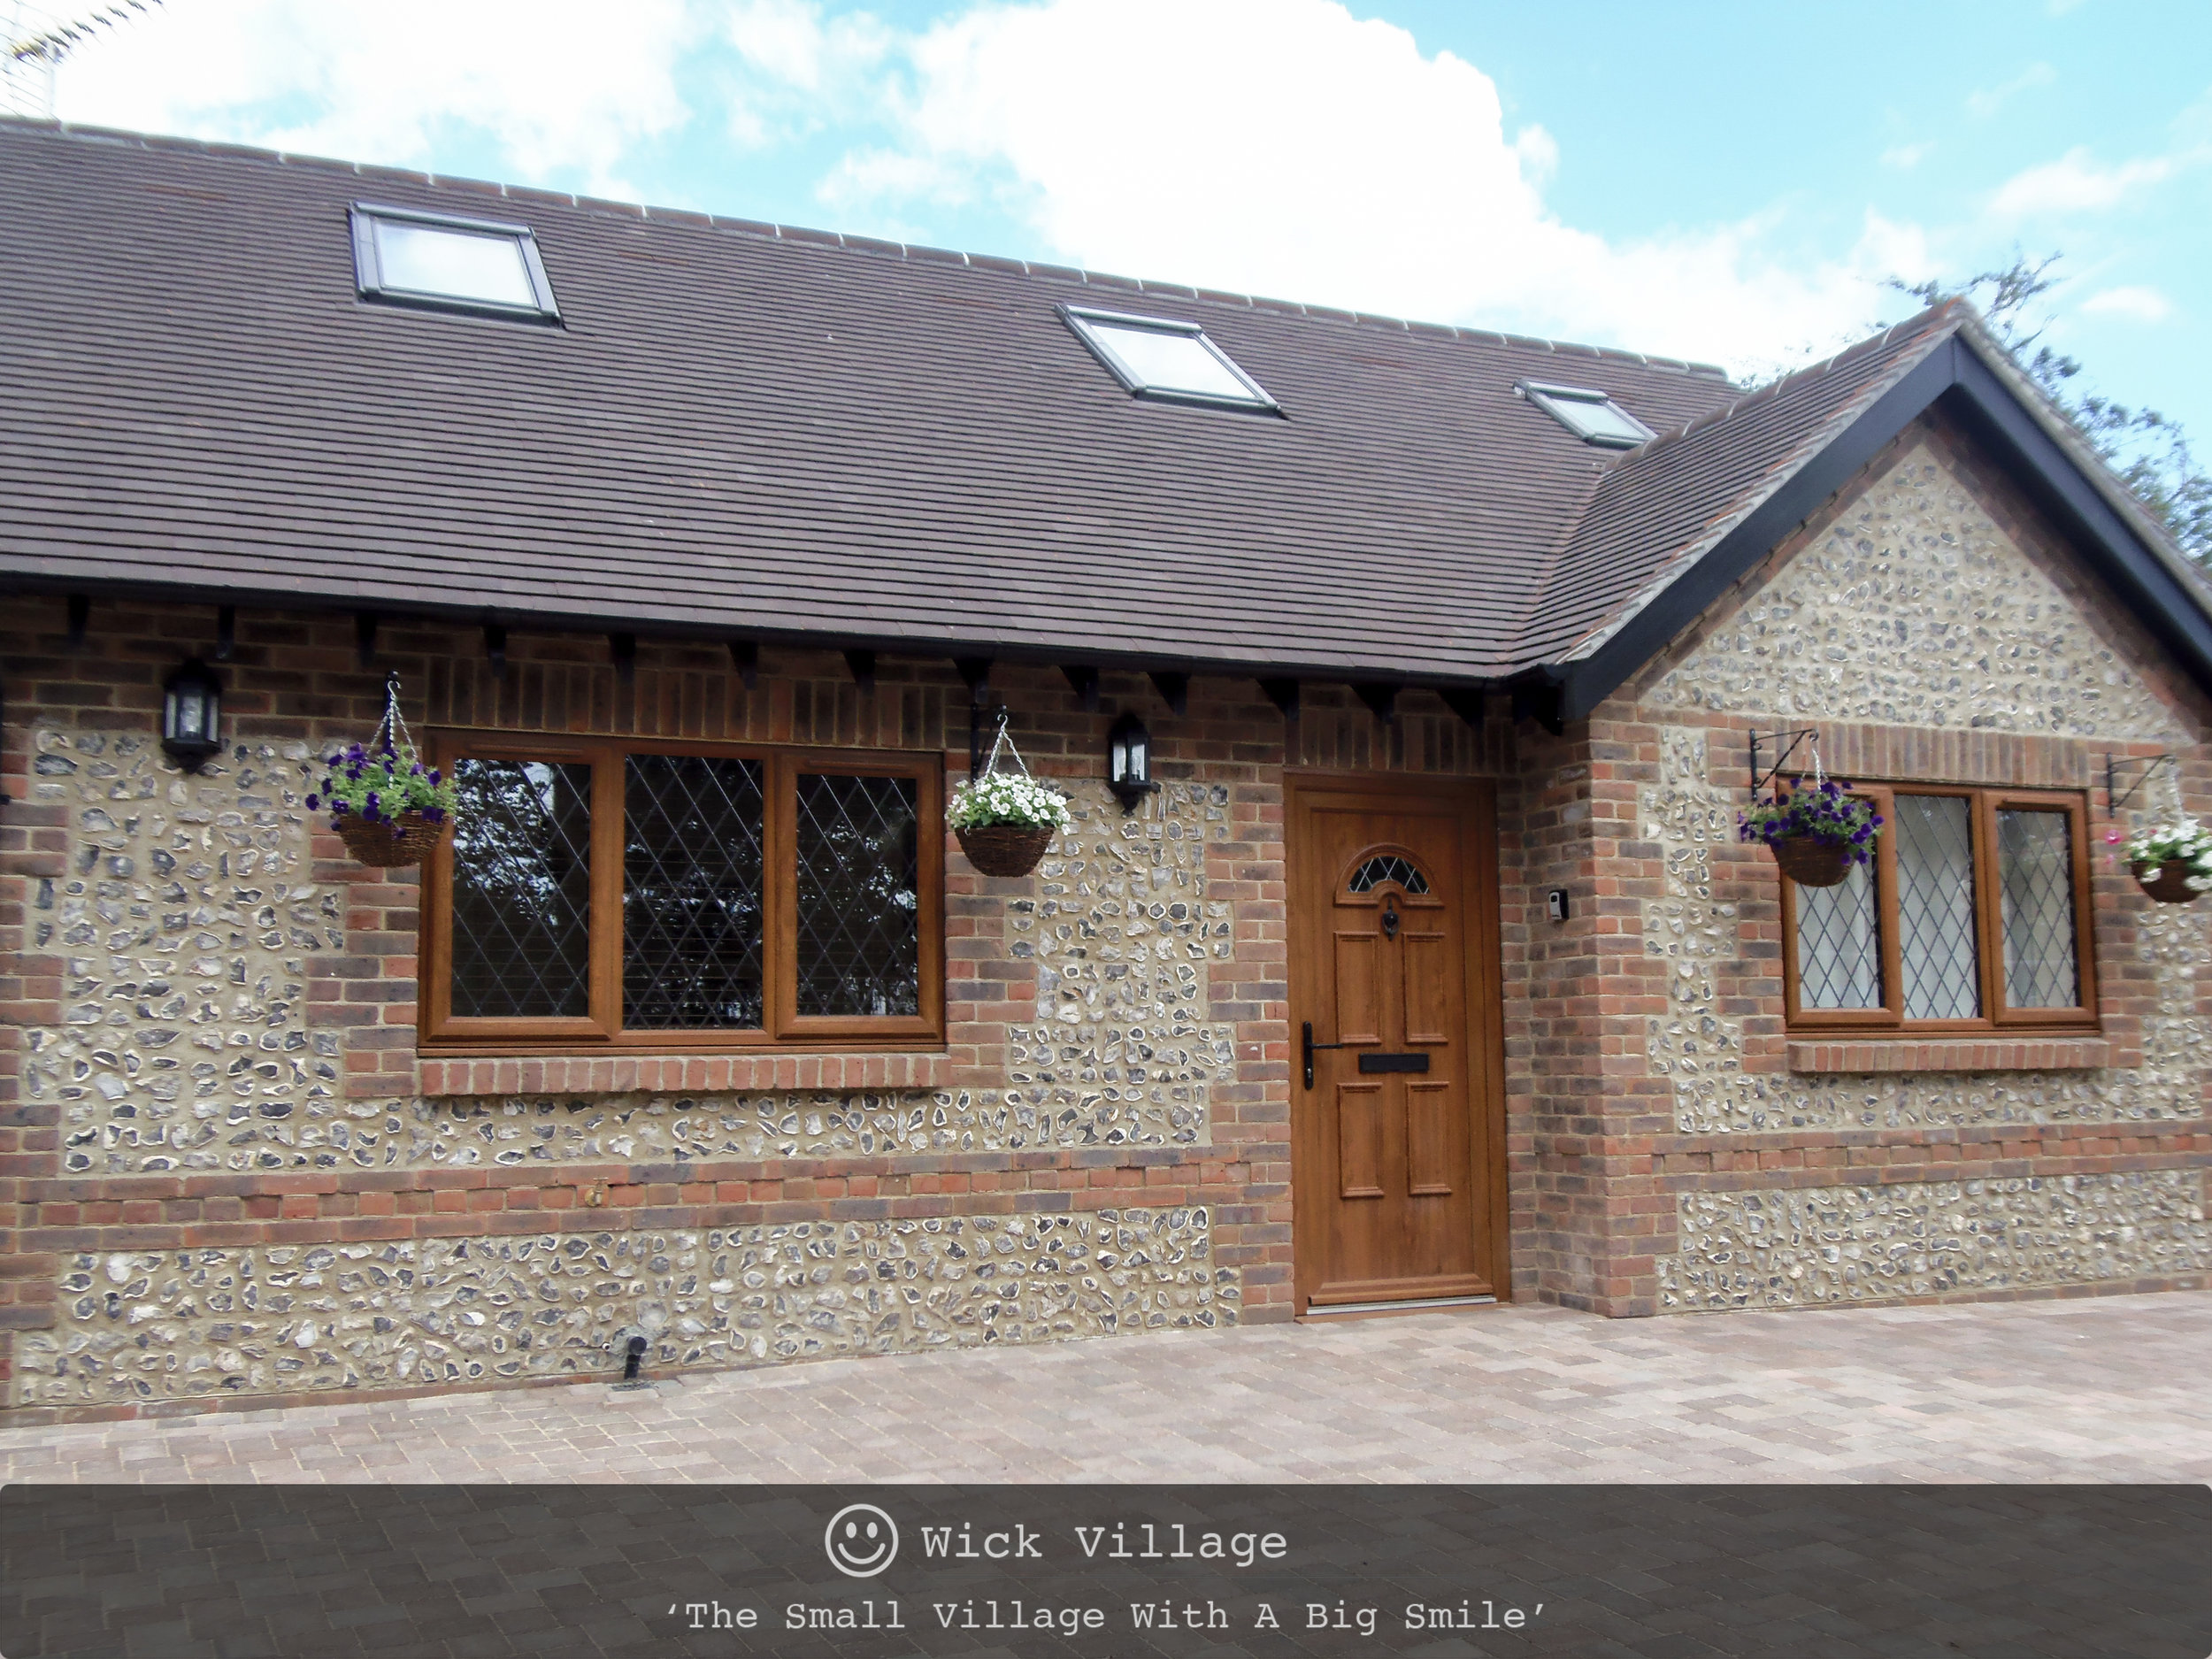 The Hunters Retreat Self-Catering Holiday Cottage in Lyminster, West Sussex.